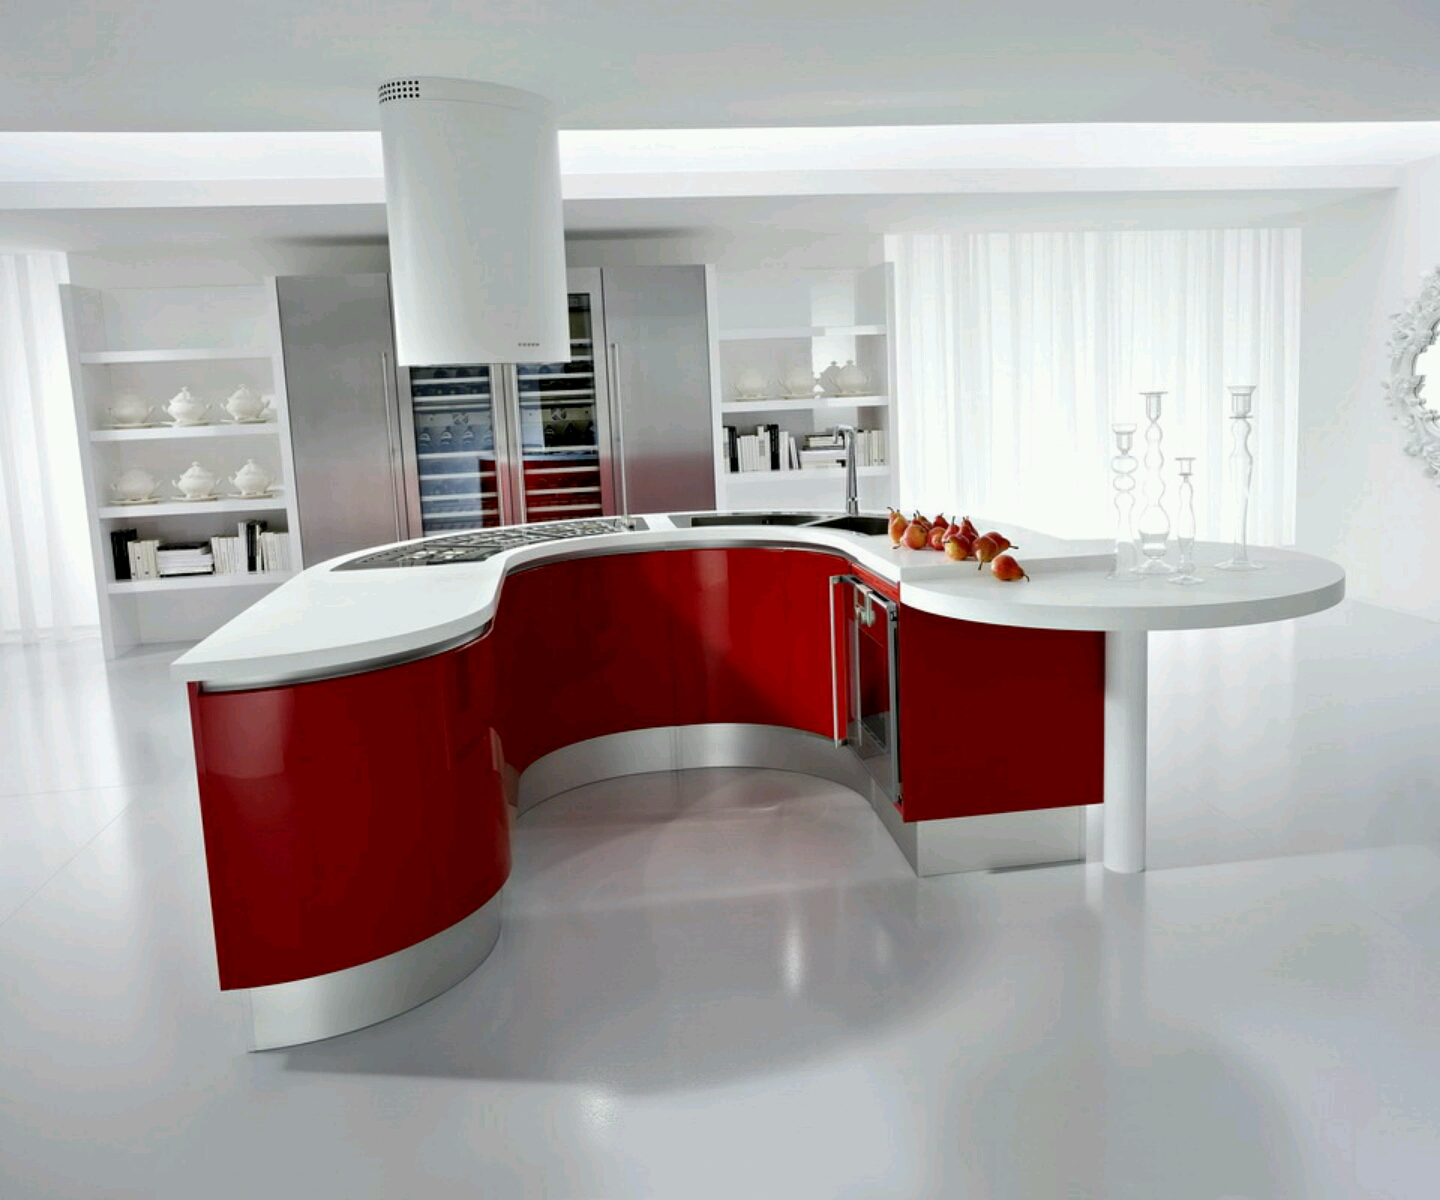 Modern kitchen cabinets designs ideas furniture gallery for Modern kitchen images